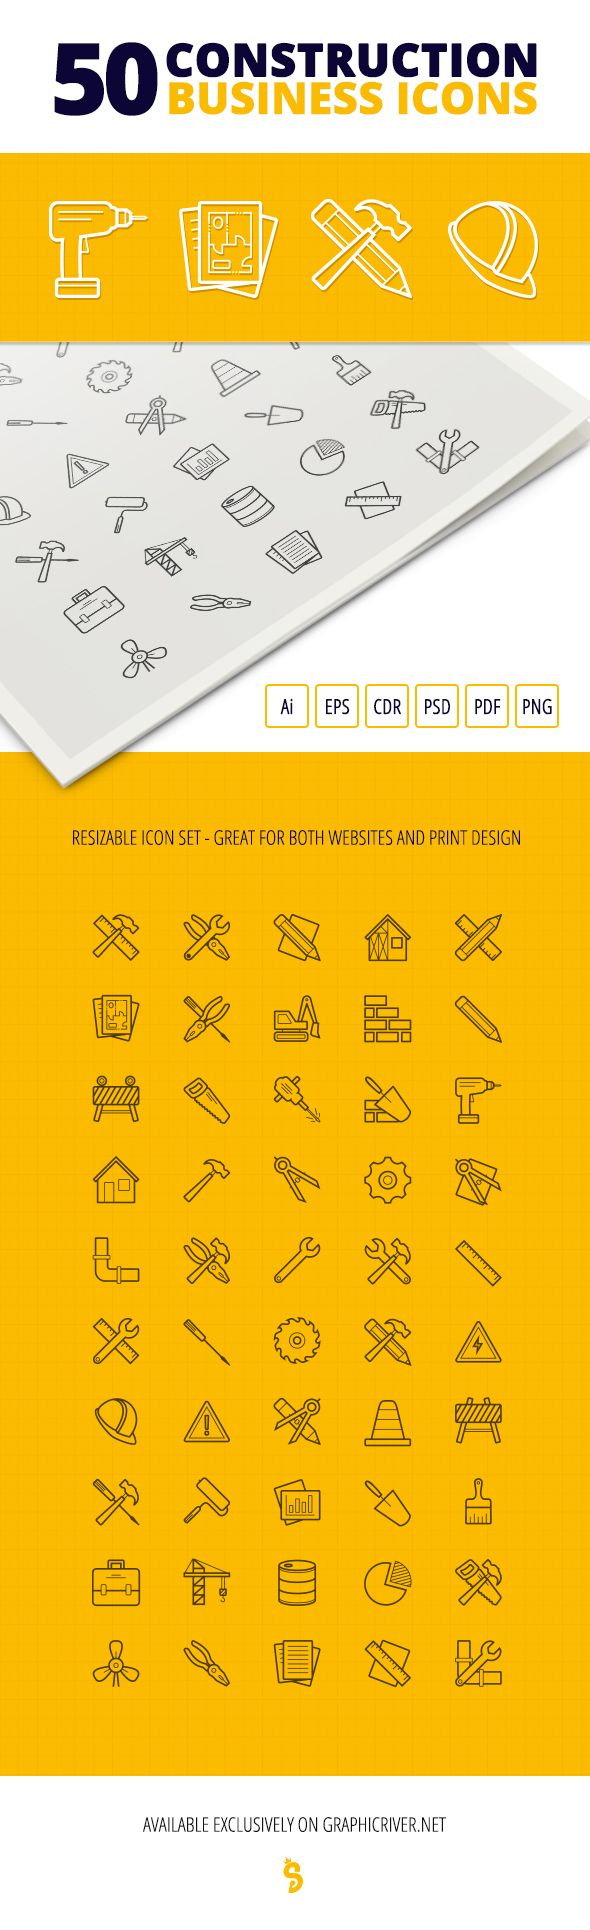 50 Construction Business Icon Set on Behance